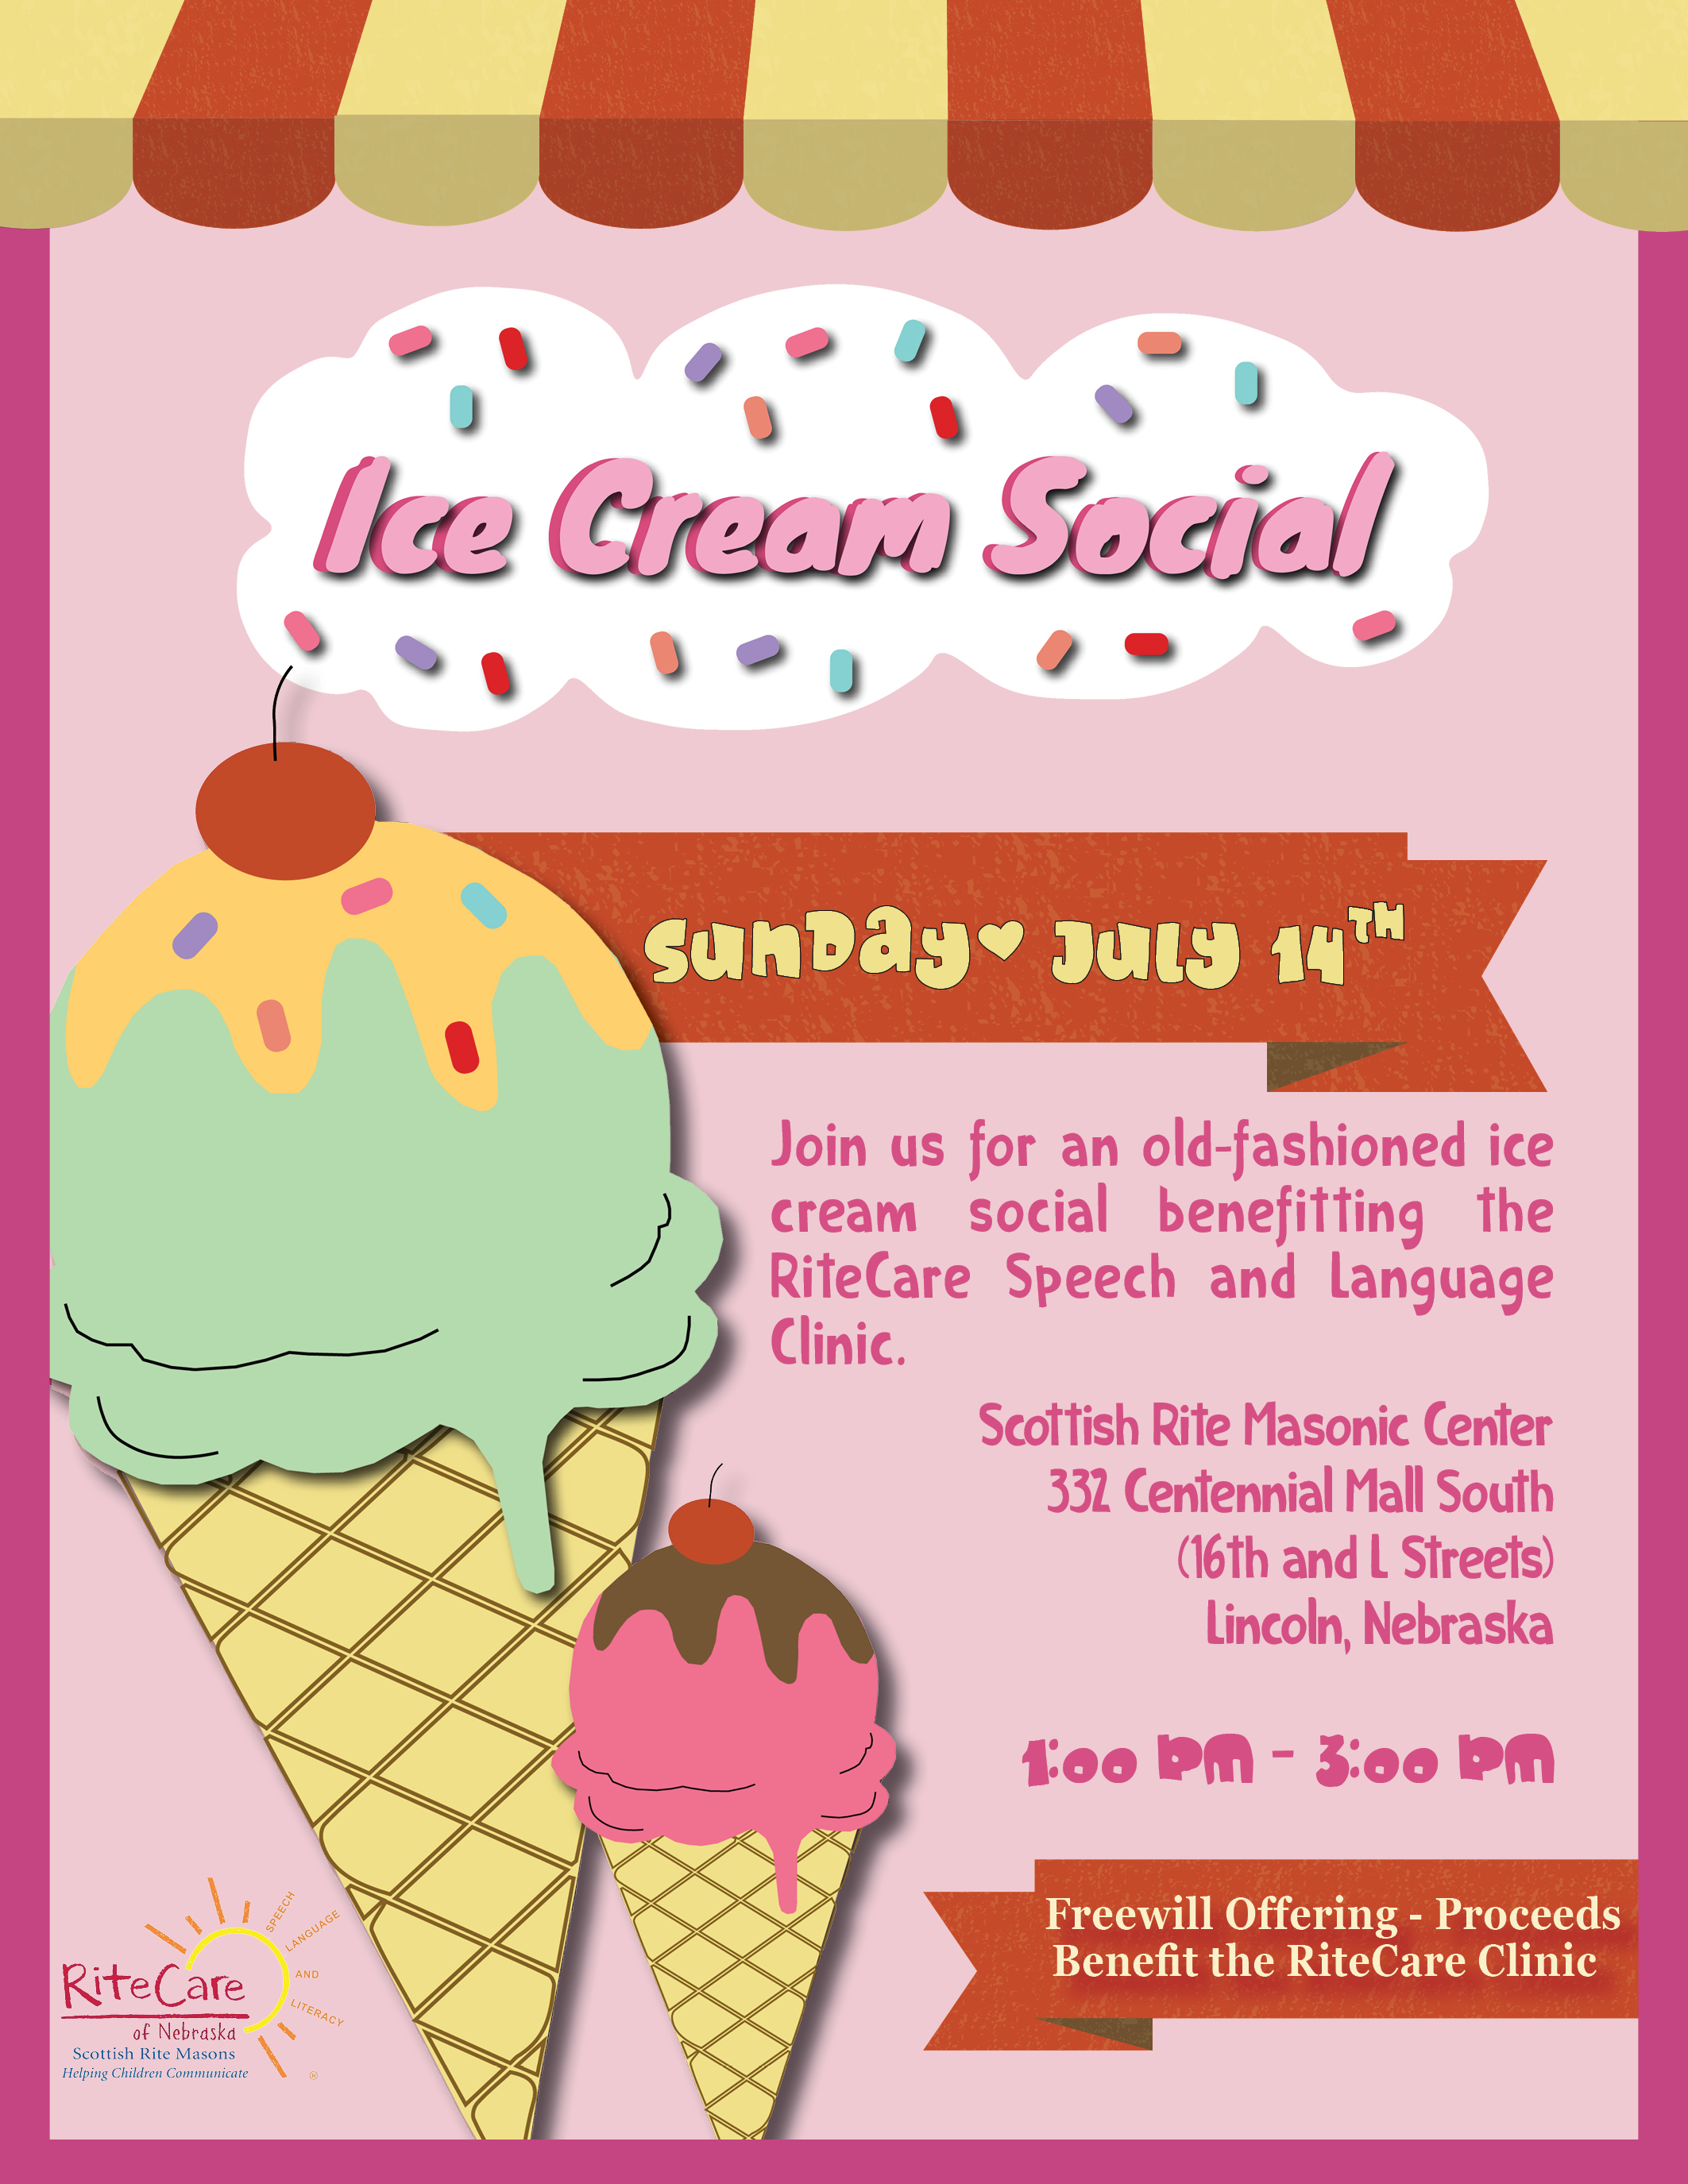 Click image above to download a PDF of the ice cream social flier.